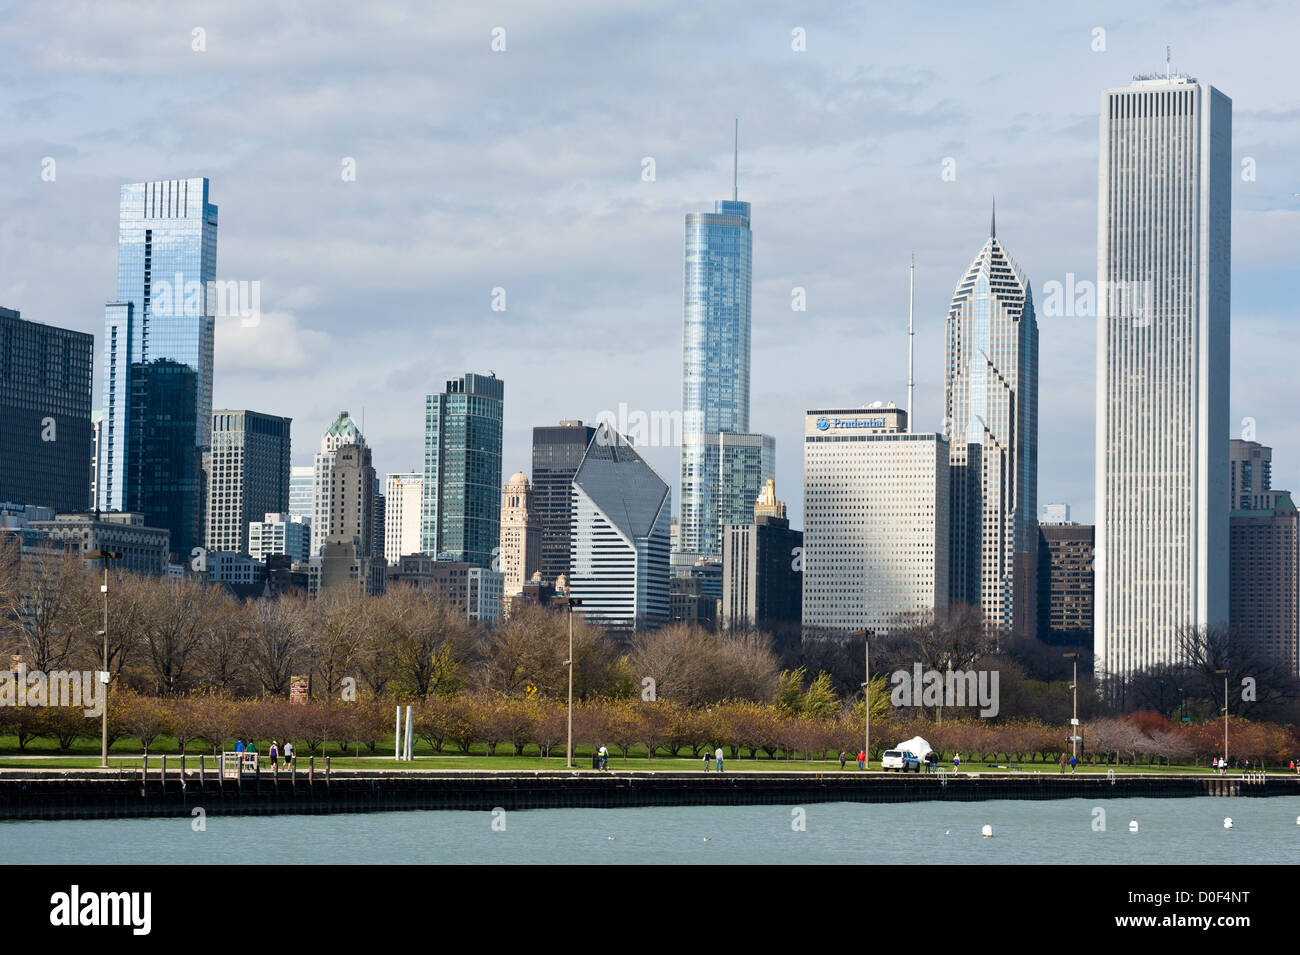 The Chicago skyline as seen from the Lakefront Trail MAX HERMAN/ALAMY - Stock Image